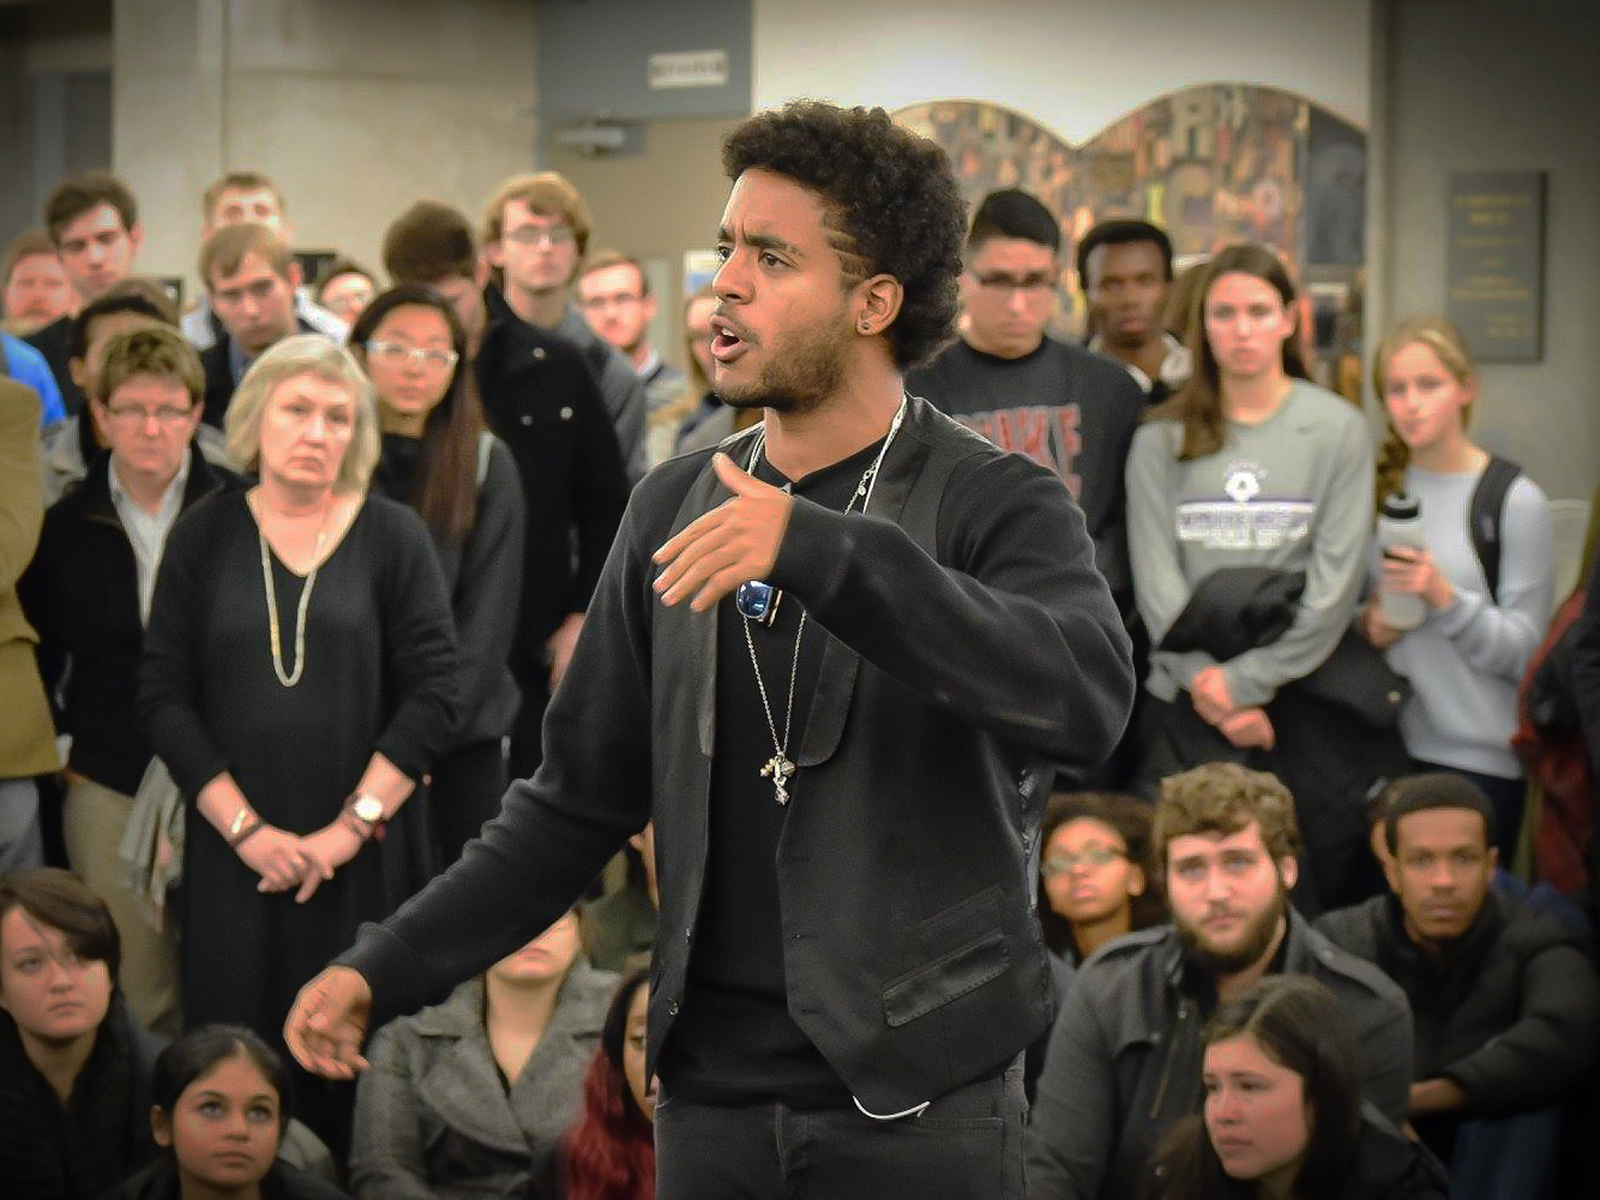 A young Black man speaking in front of a group of people